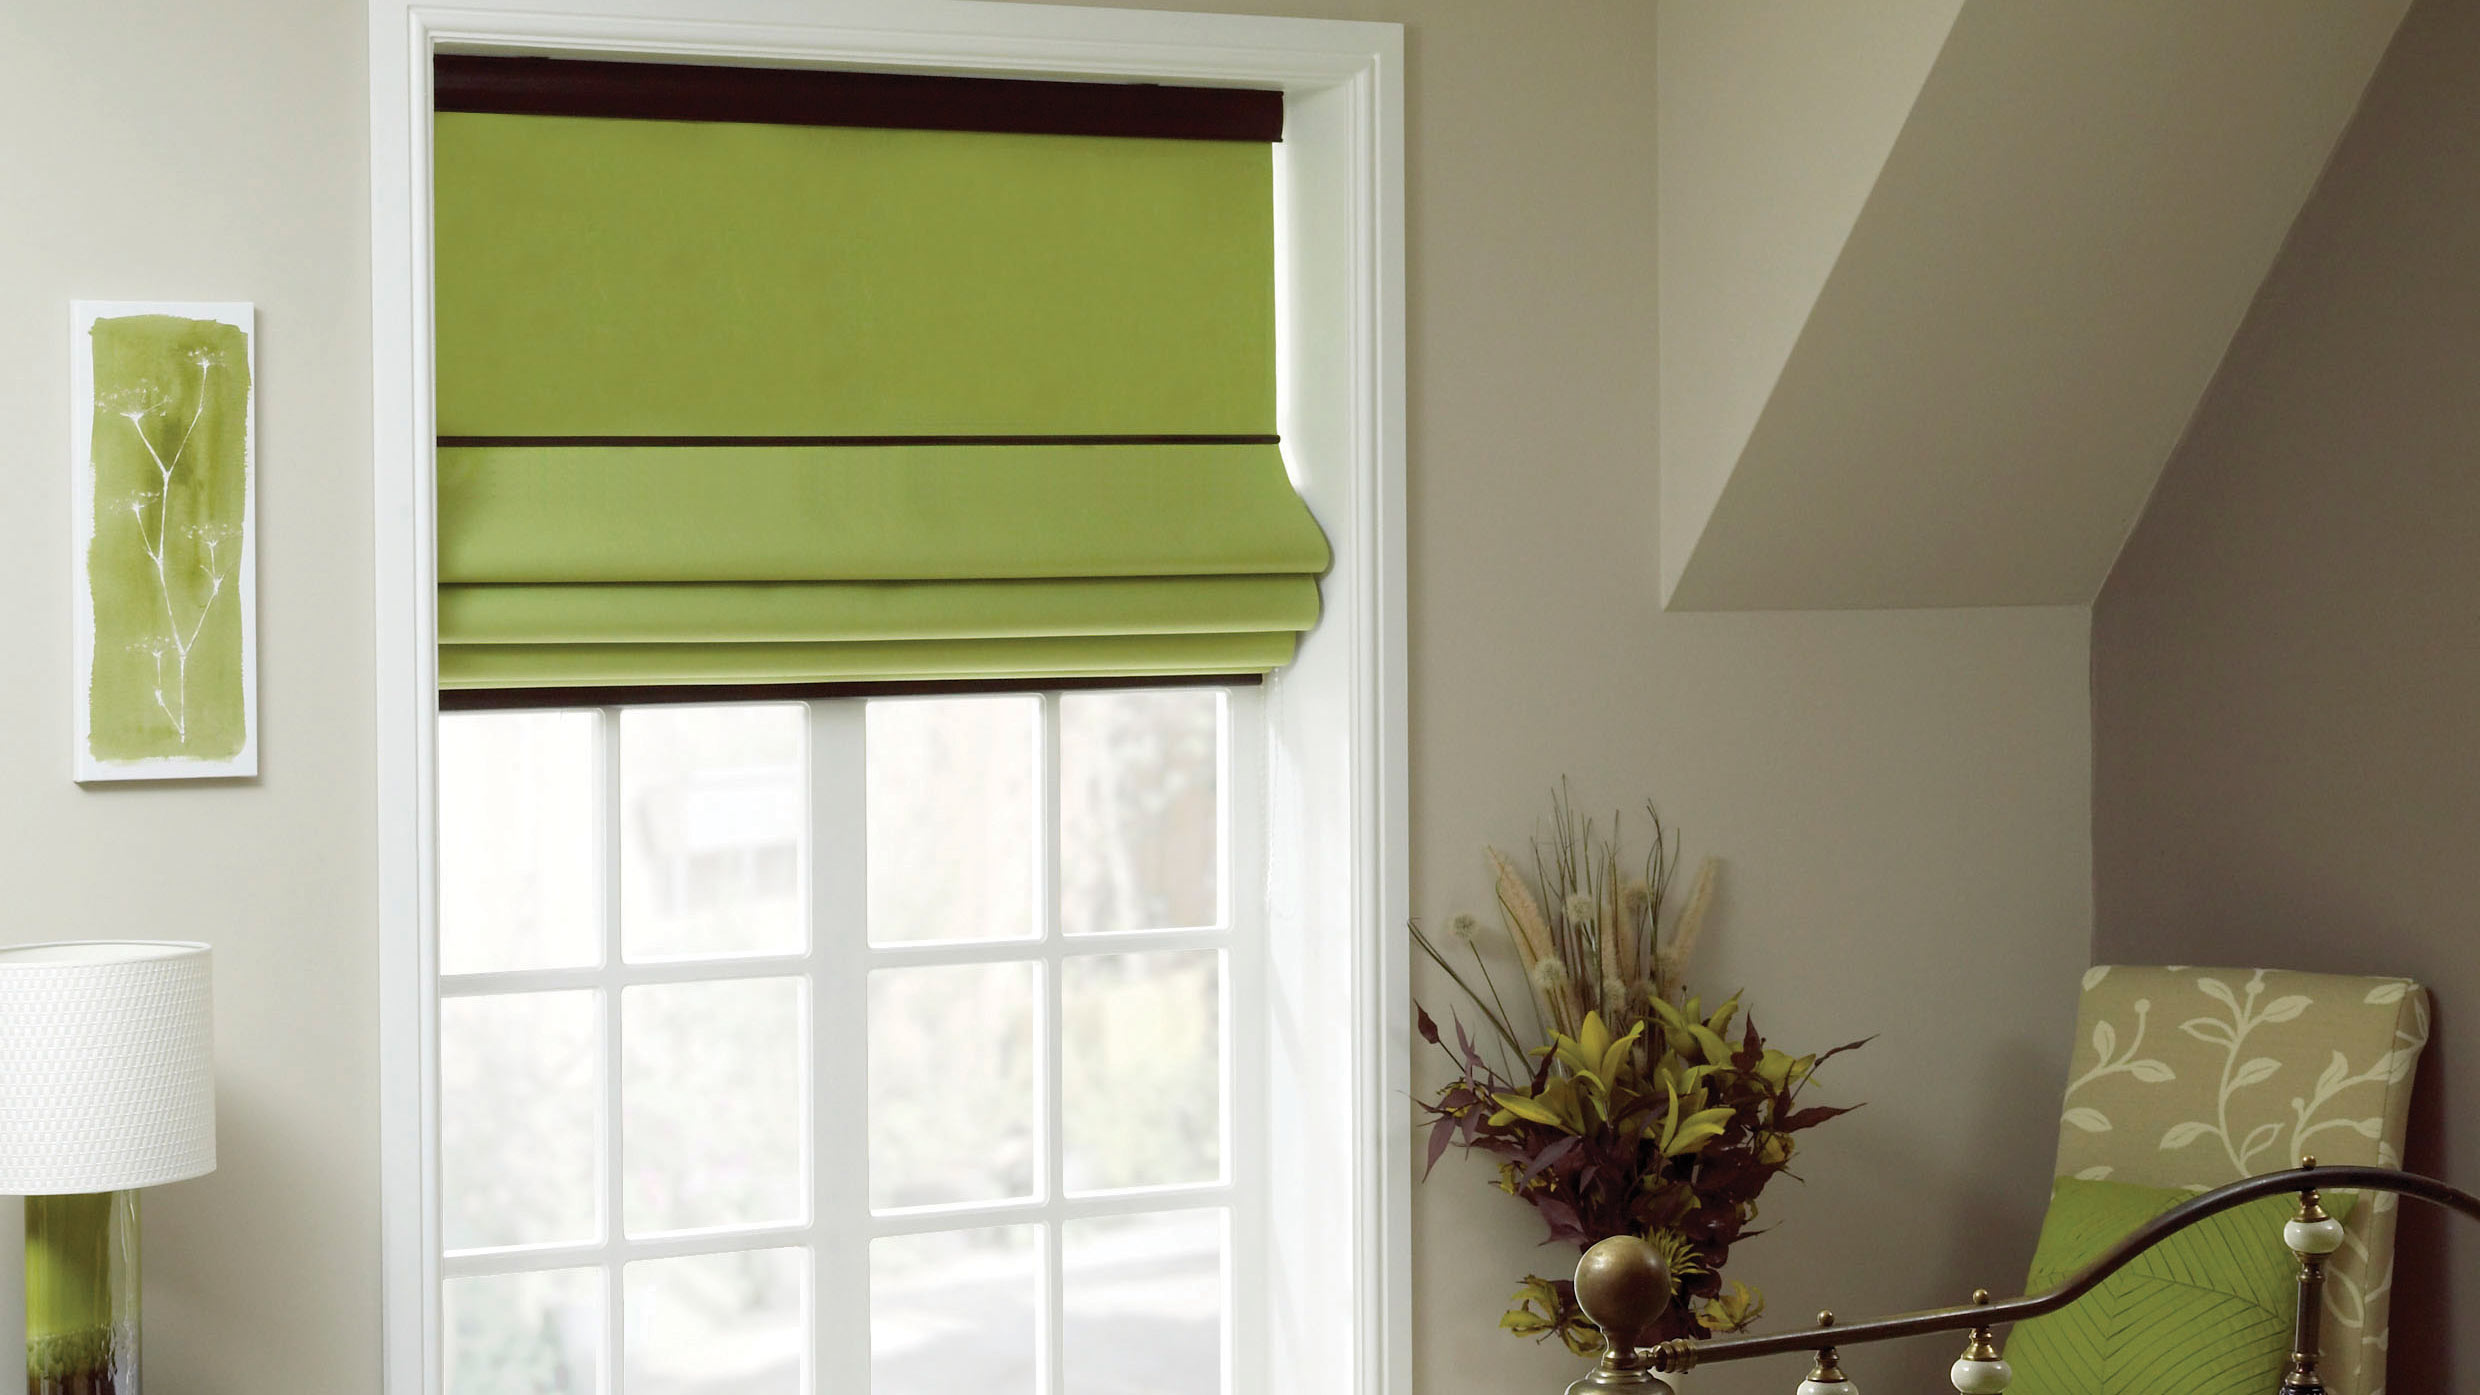 pleated blinds - Littlehampton Blinds